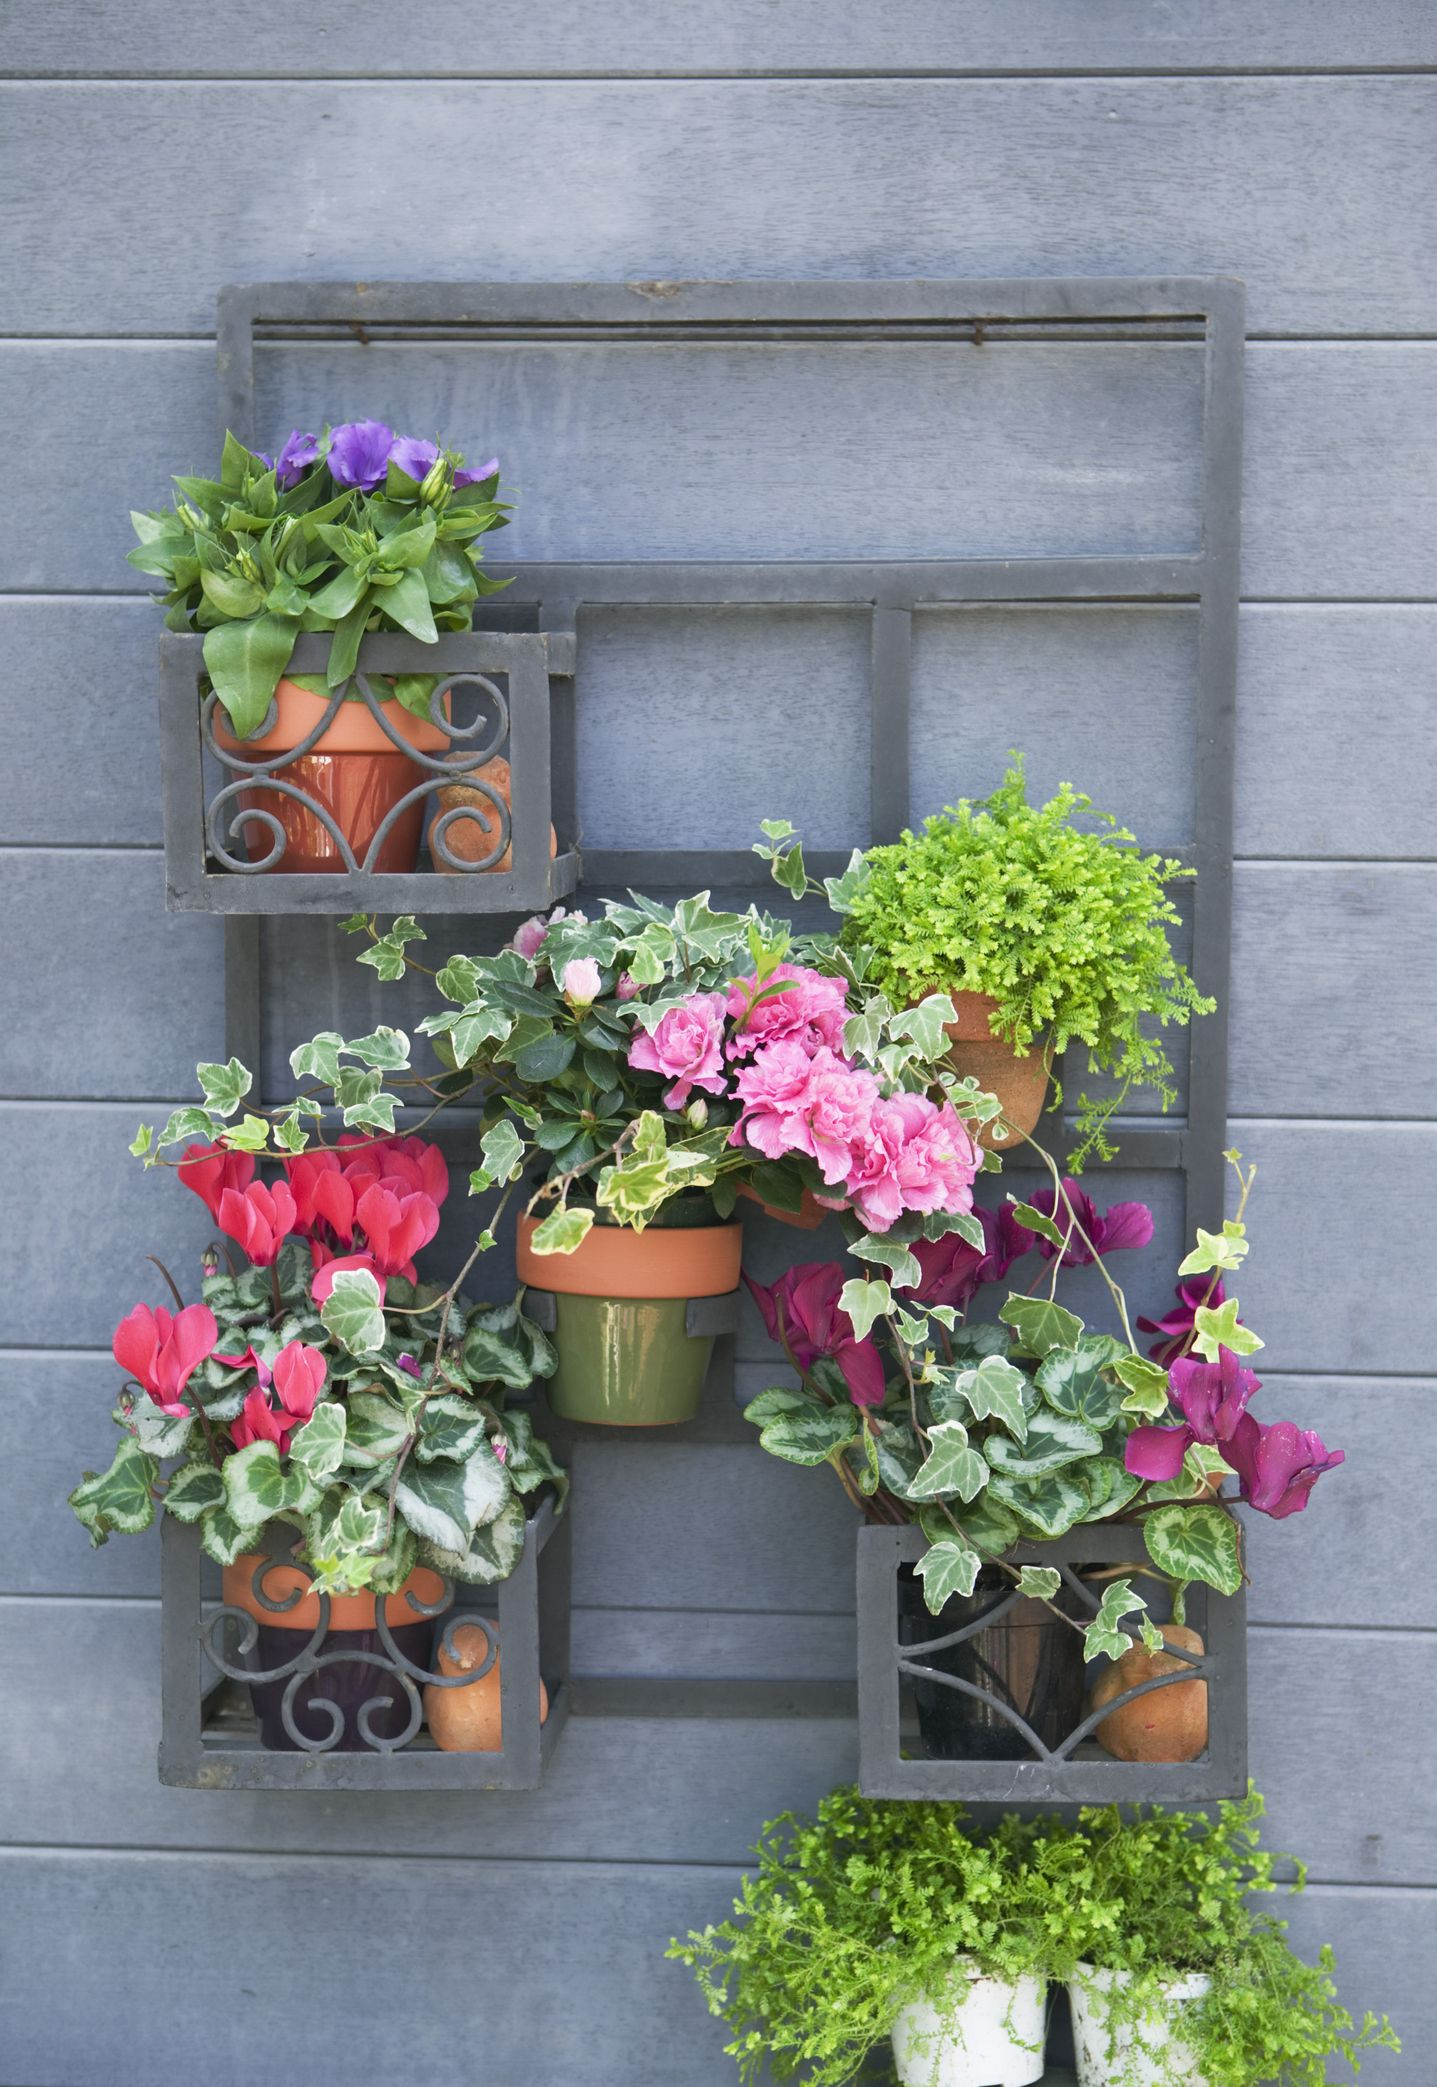 40 small garden ideas small garden designs - Small Garden Design